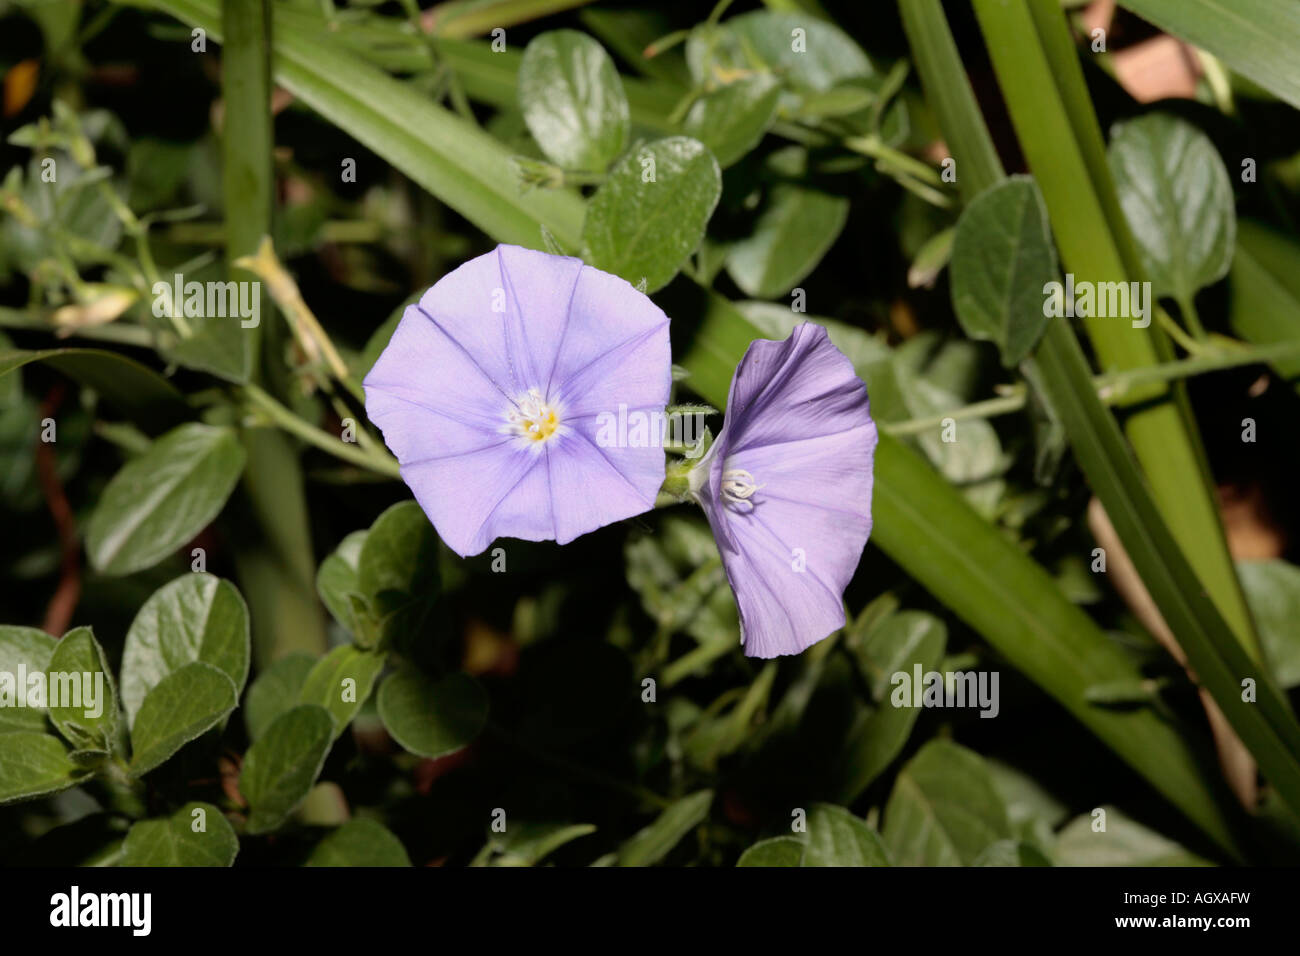 Bindweed/Convolvulus - Convolvulus althaeoides-Family Convolvulaceae - Stock Image